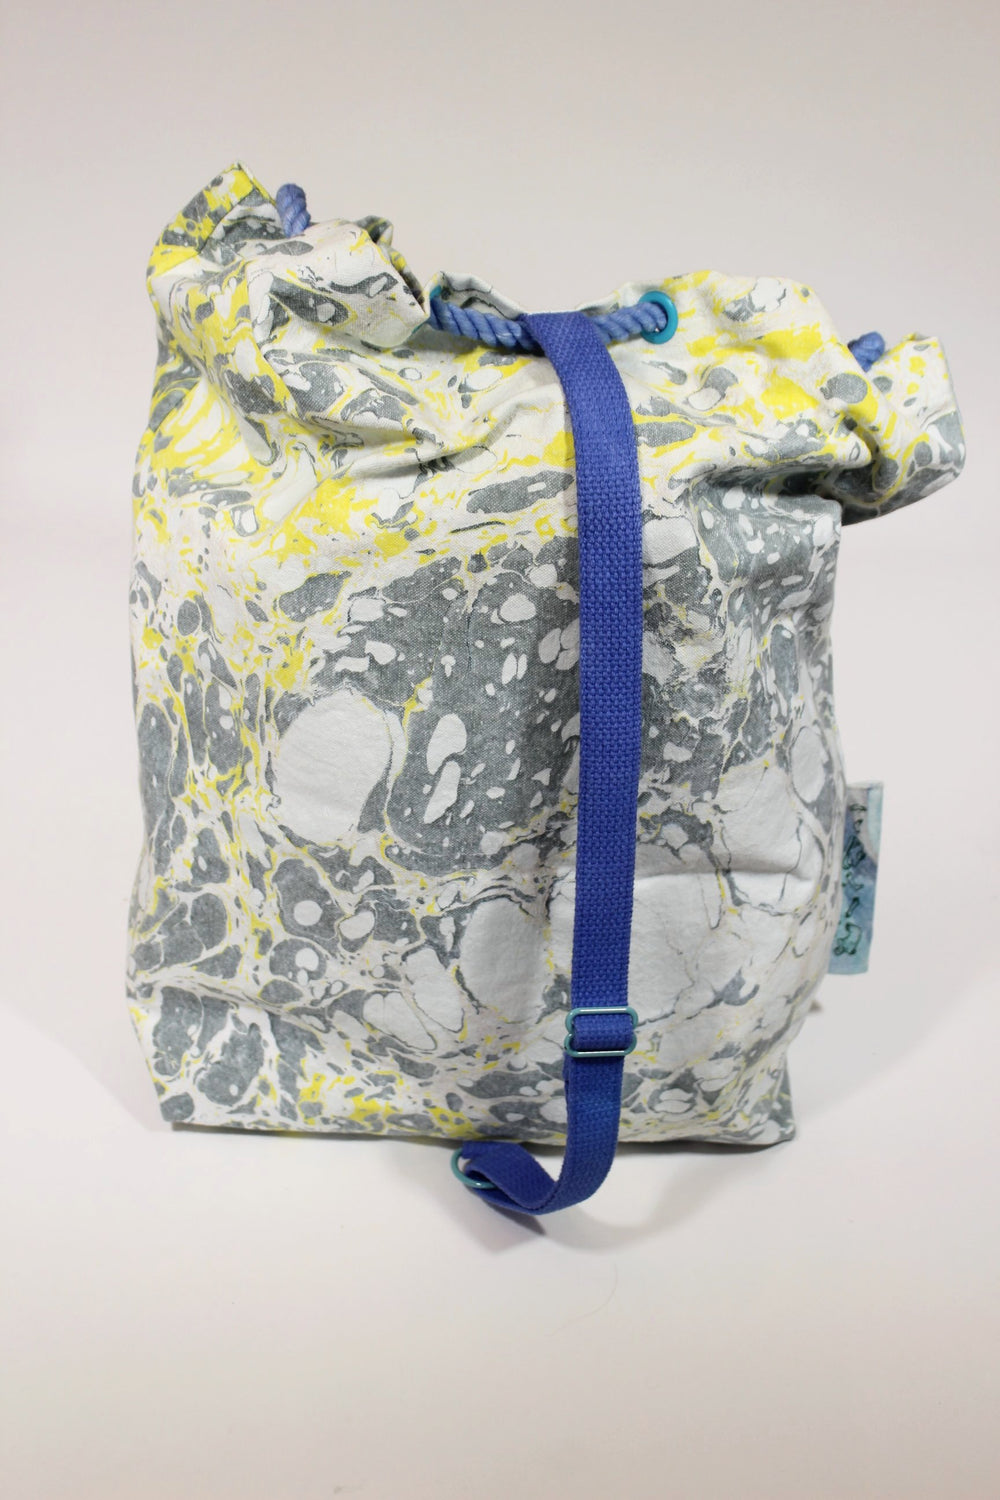 Objects 'n the Round x Commend Drawstring Bag